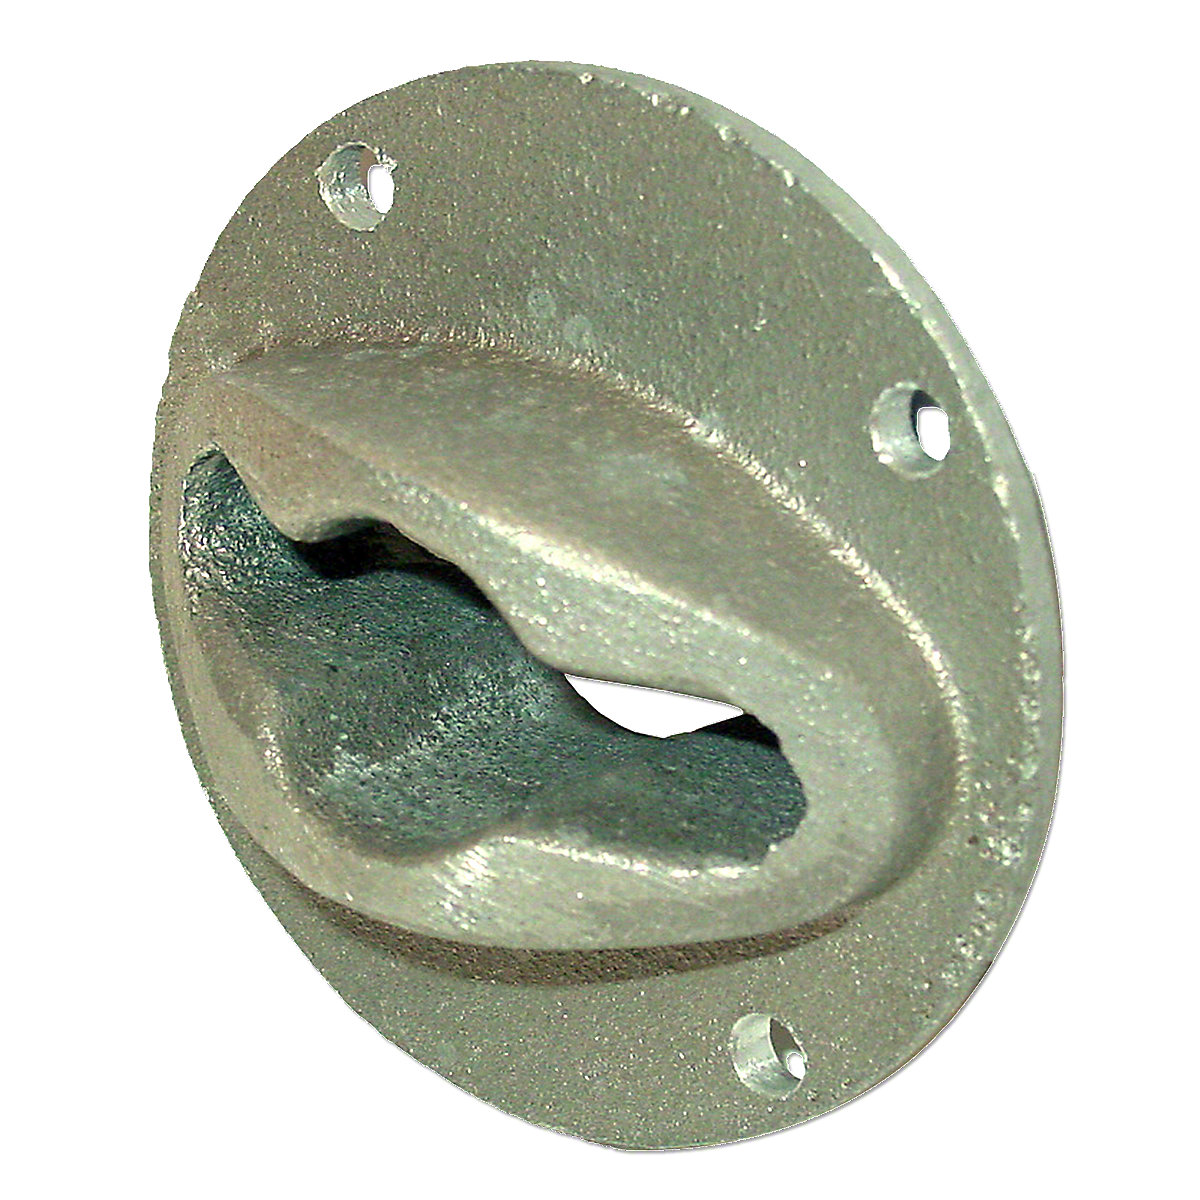 Crank Hole Casting For Allis Chalmers: G.